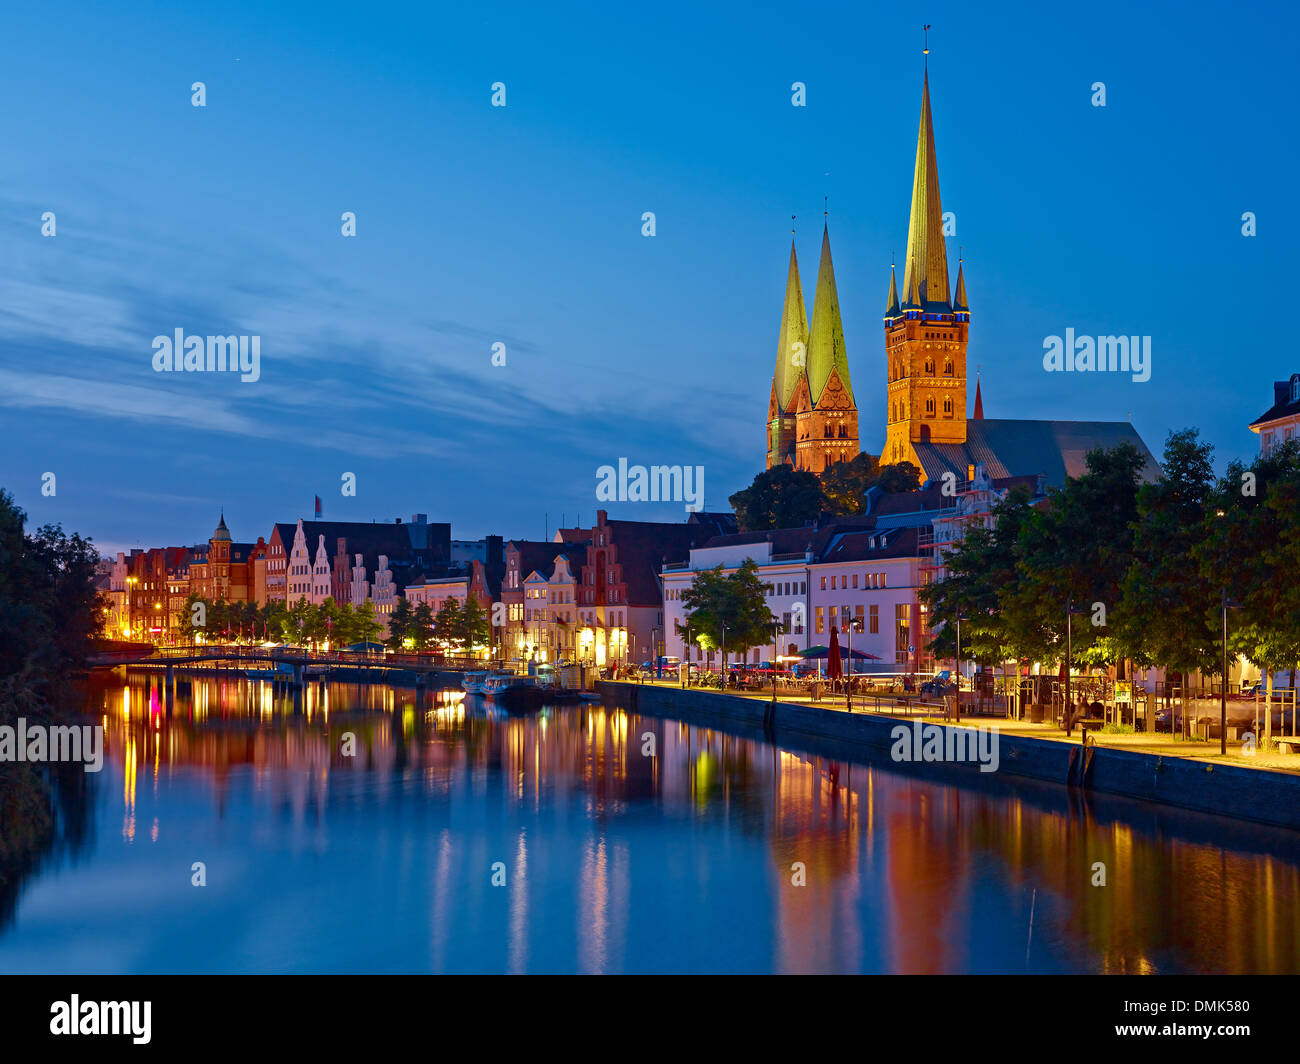 Vue de Obertrave avec St Davids de Lübeck et de Saint Peters Church, Lübeck, Schleswig-Holstein, Allemagne Photo Stock